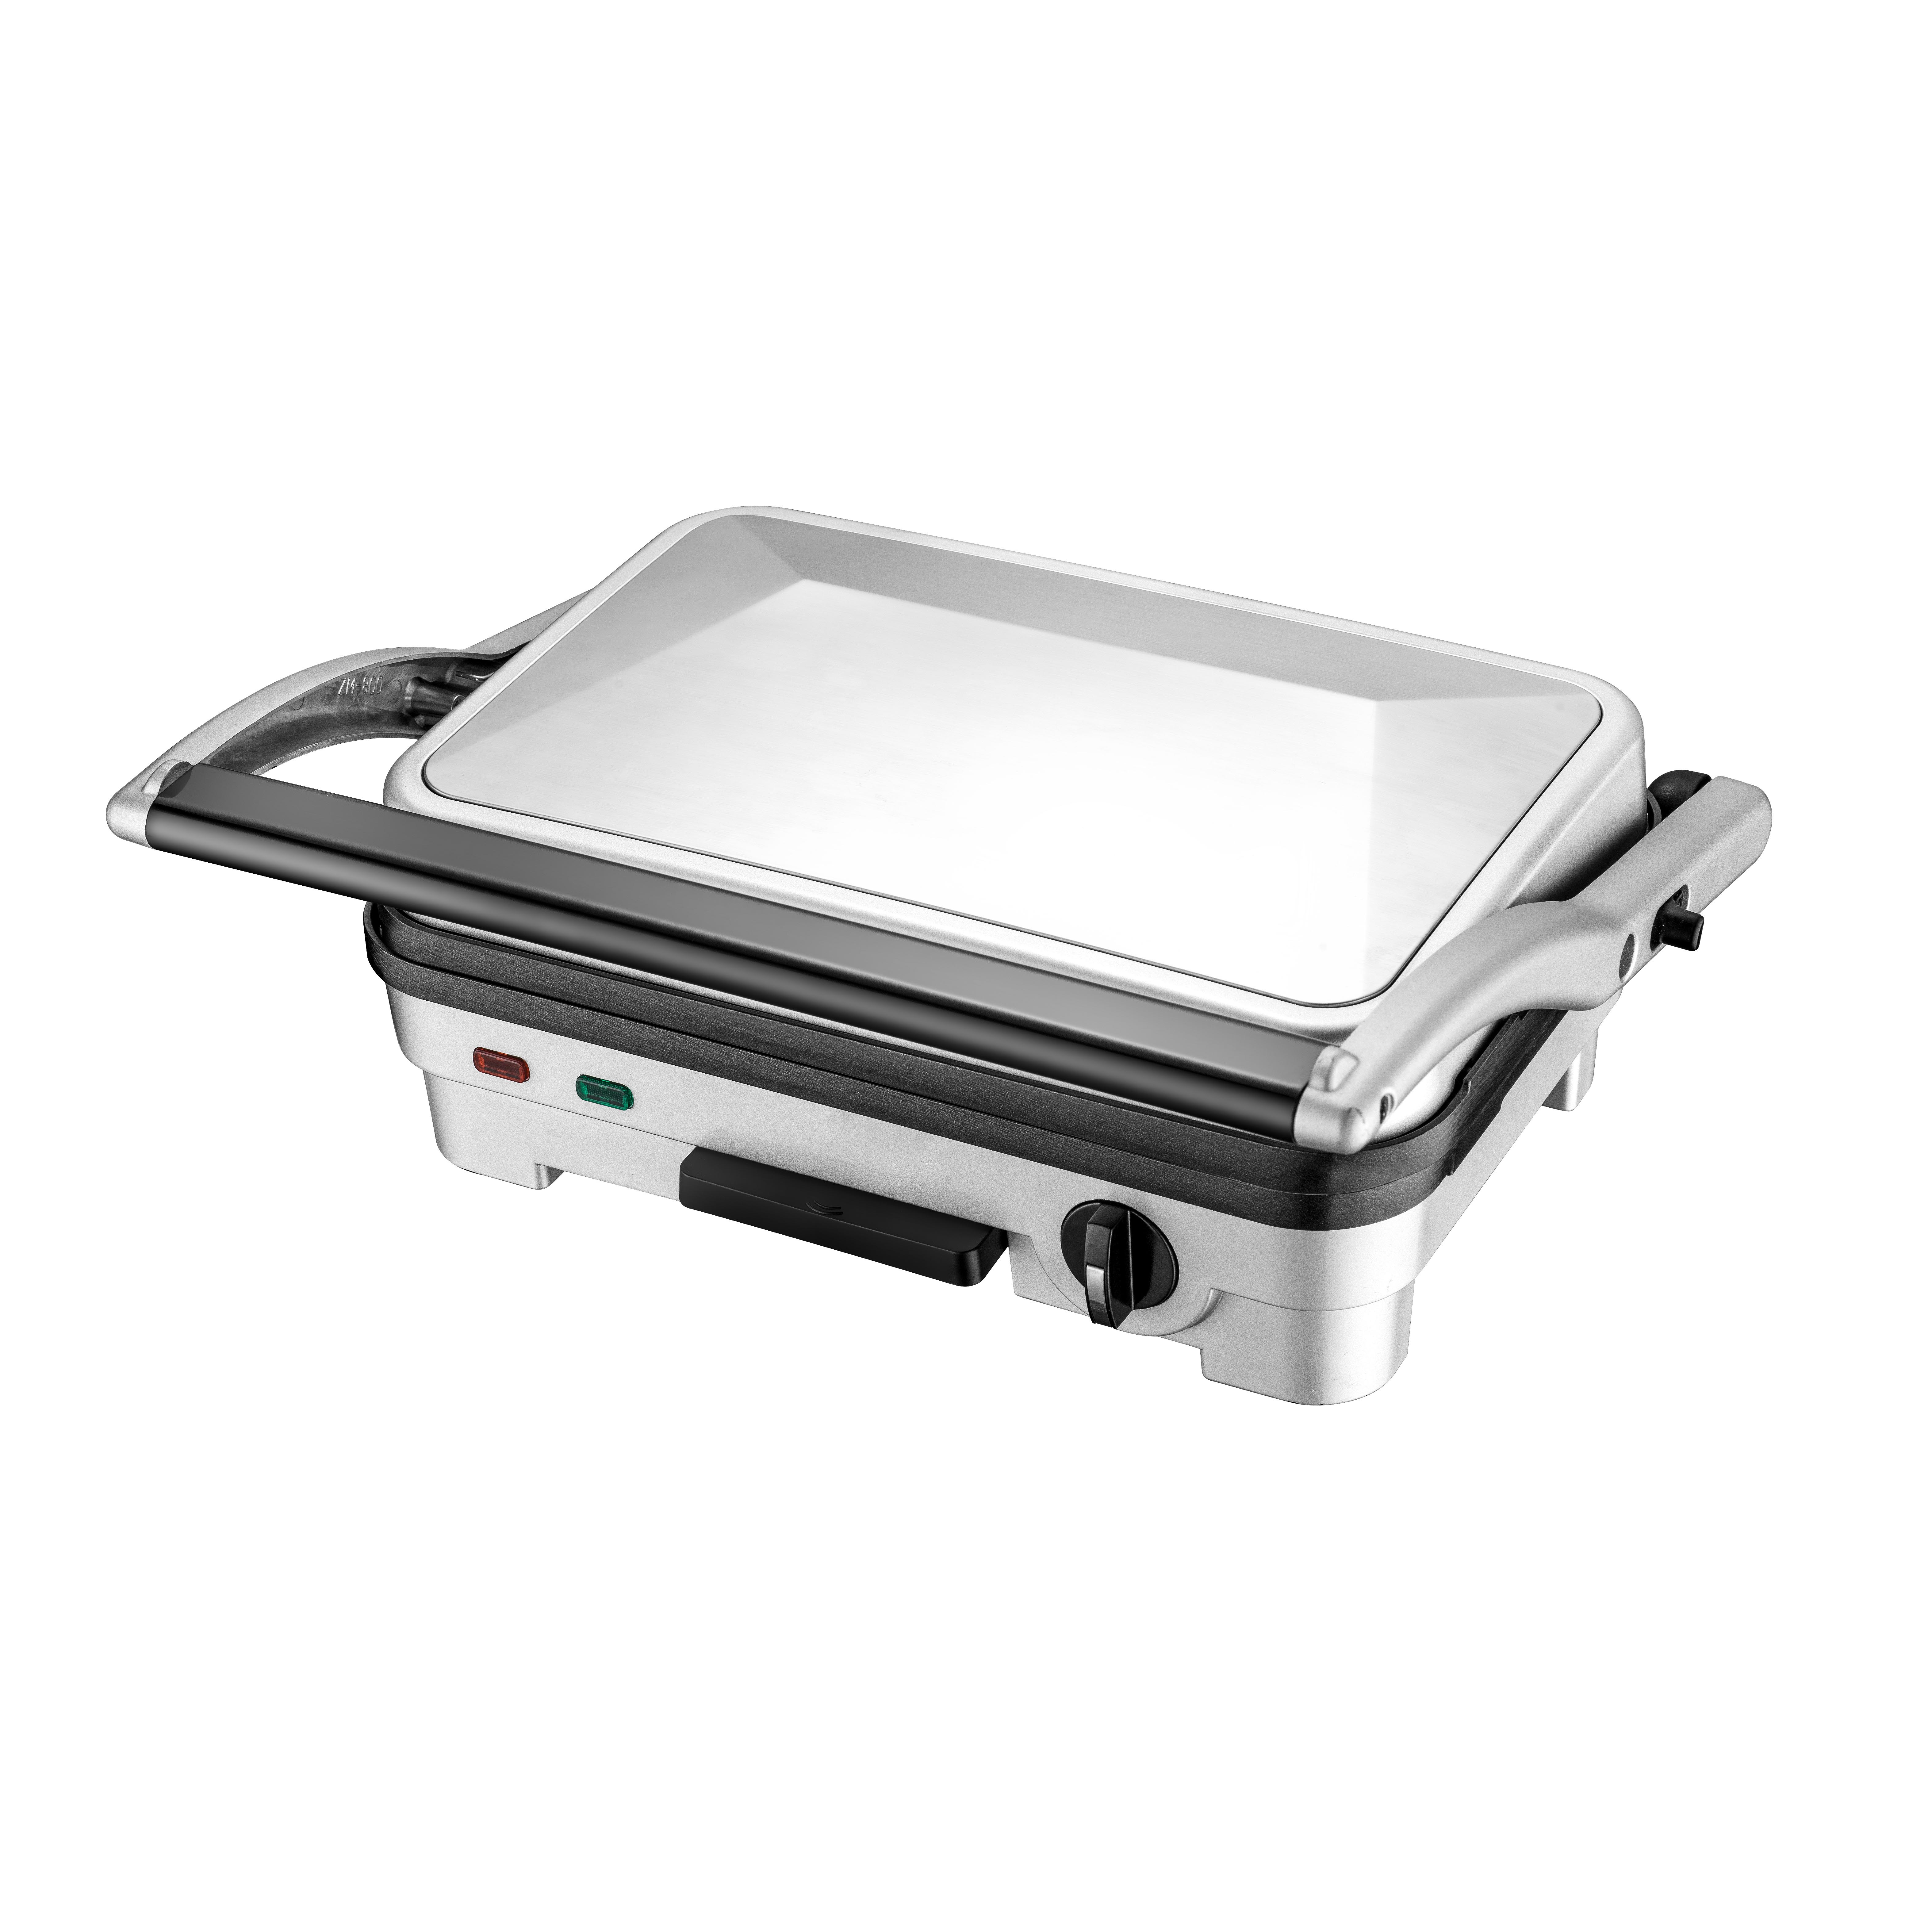 CG-012 Electric Grill